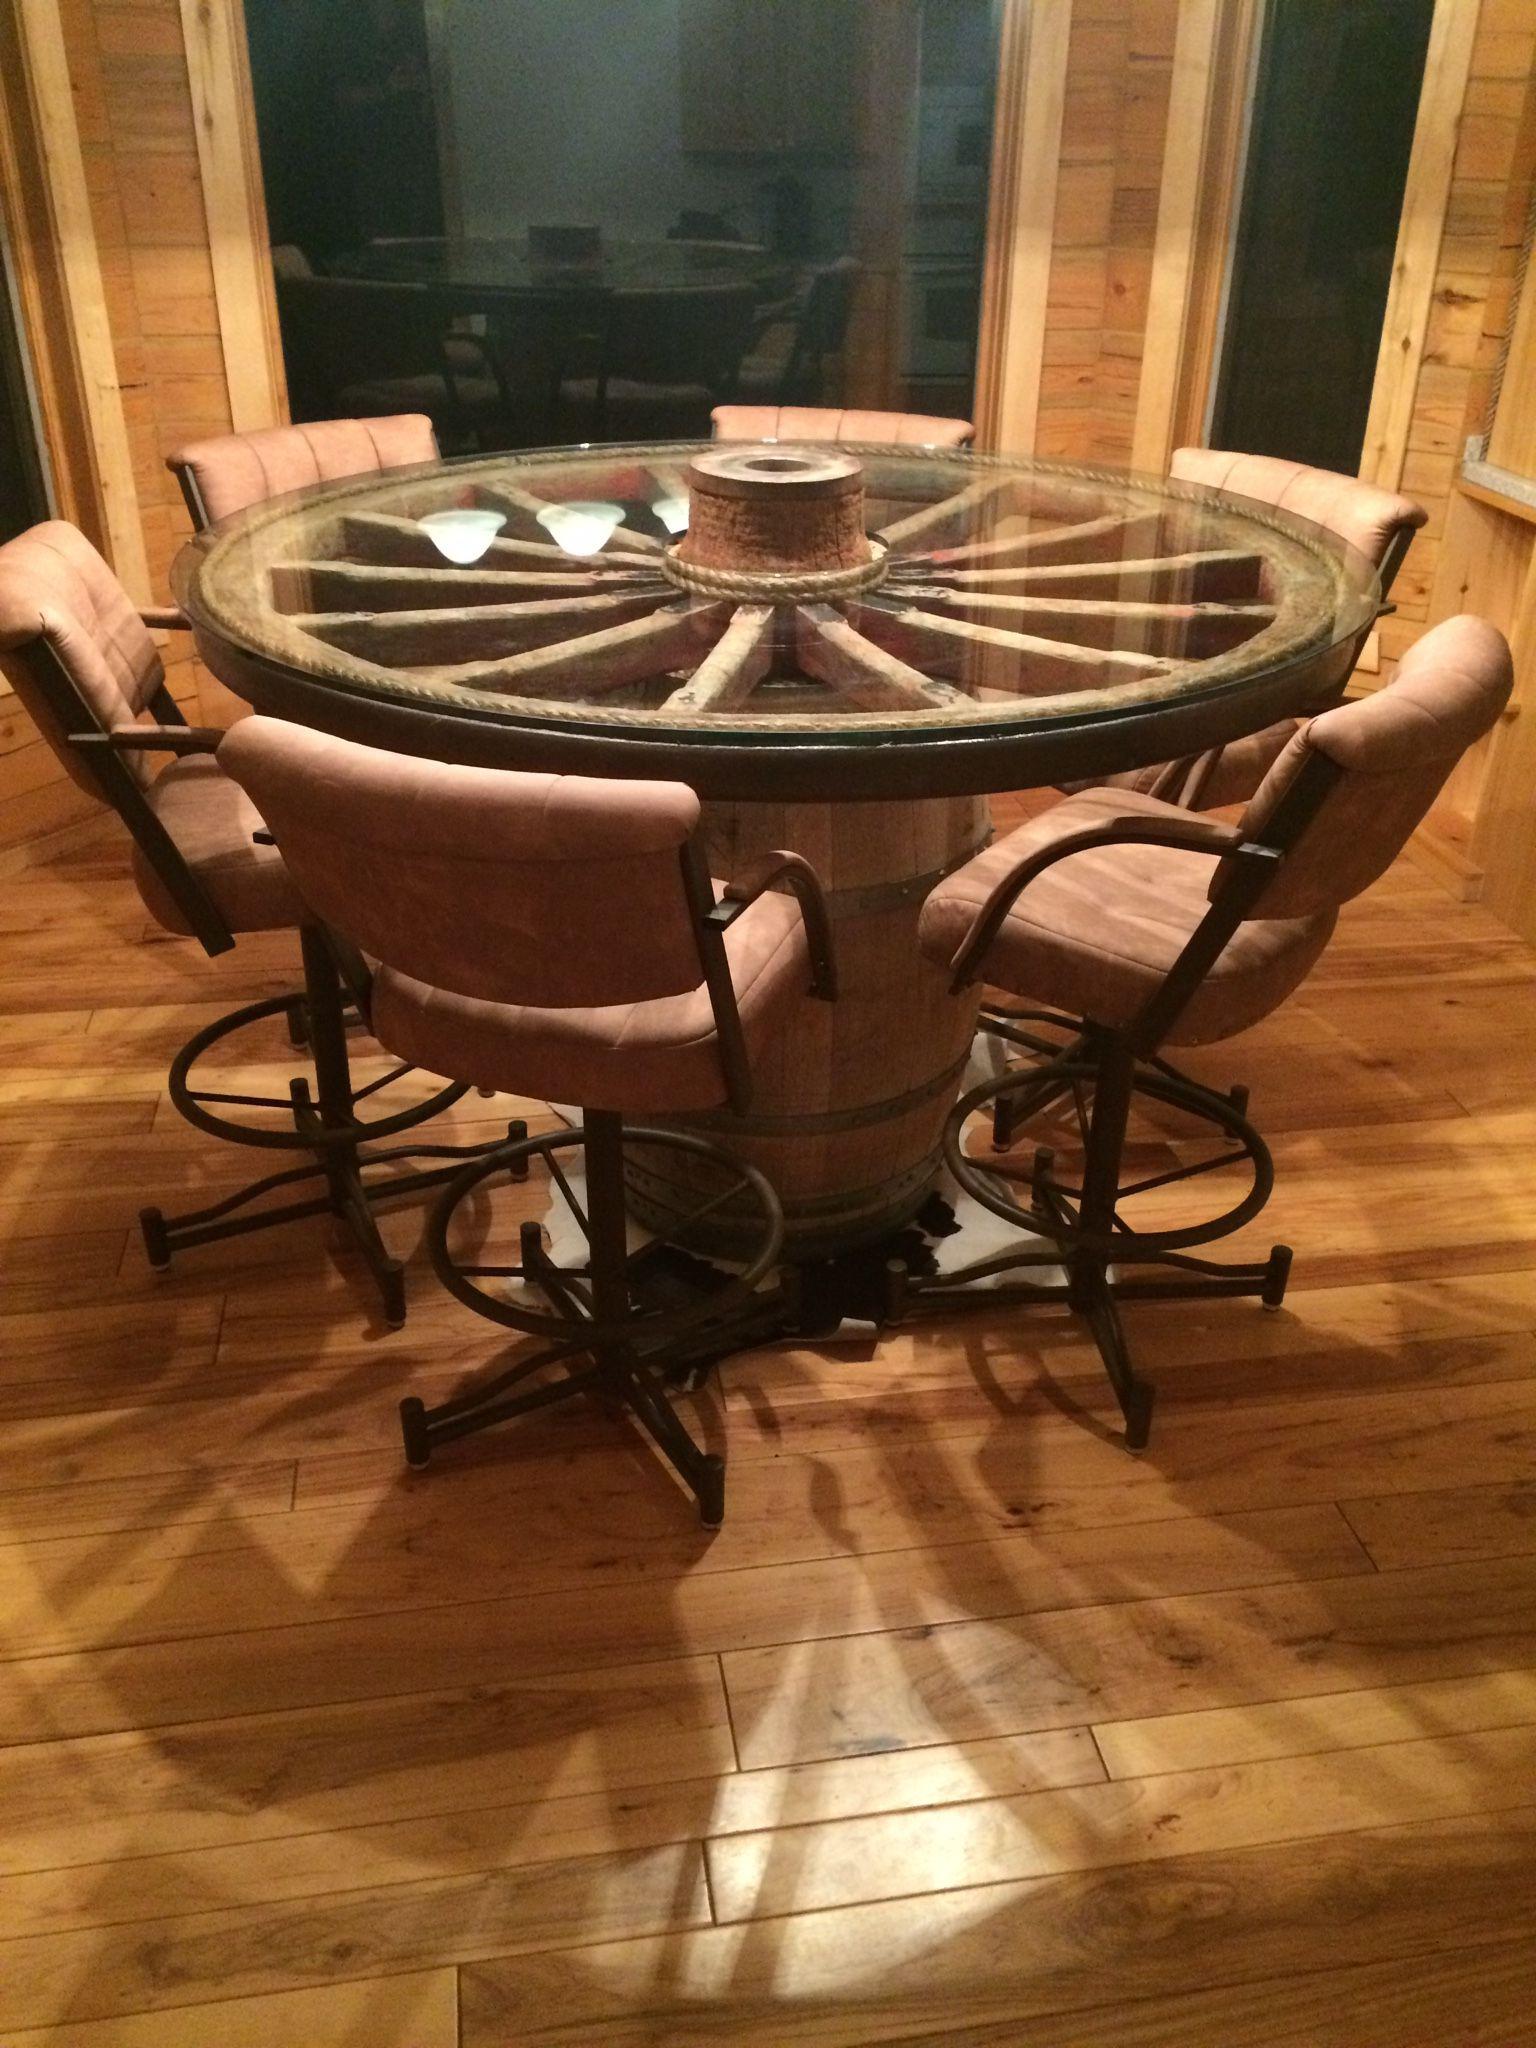 Antique Wagon Wheel Furniture Best Of Pin by Tena sonnier On My House